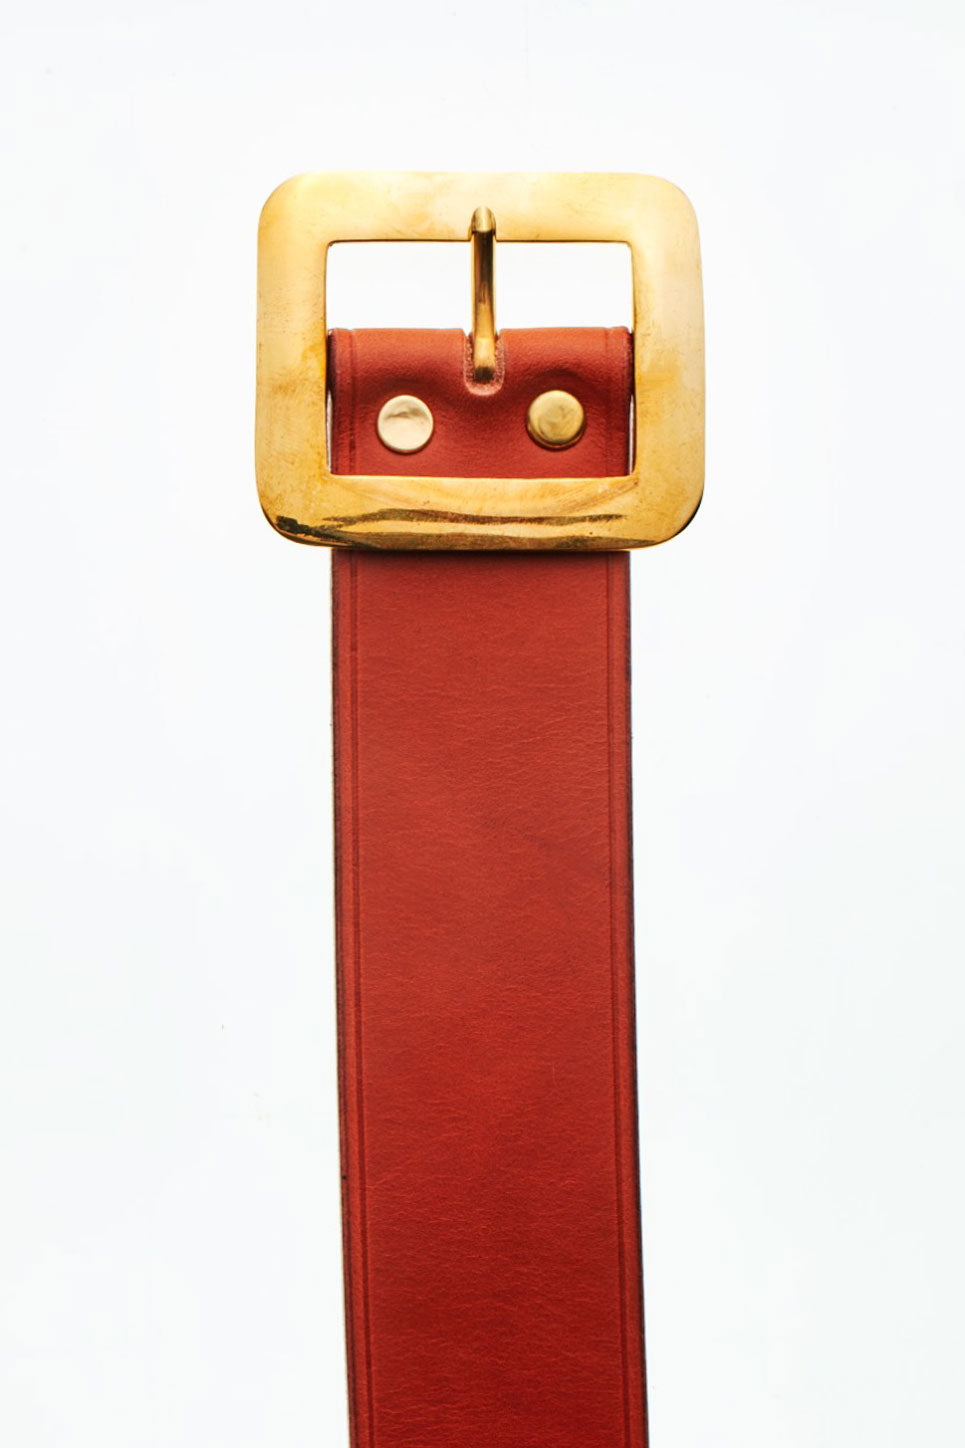 The Fireman's Belt in Tan